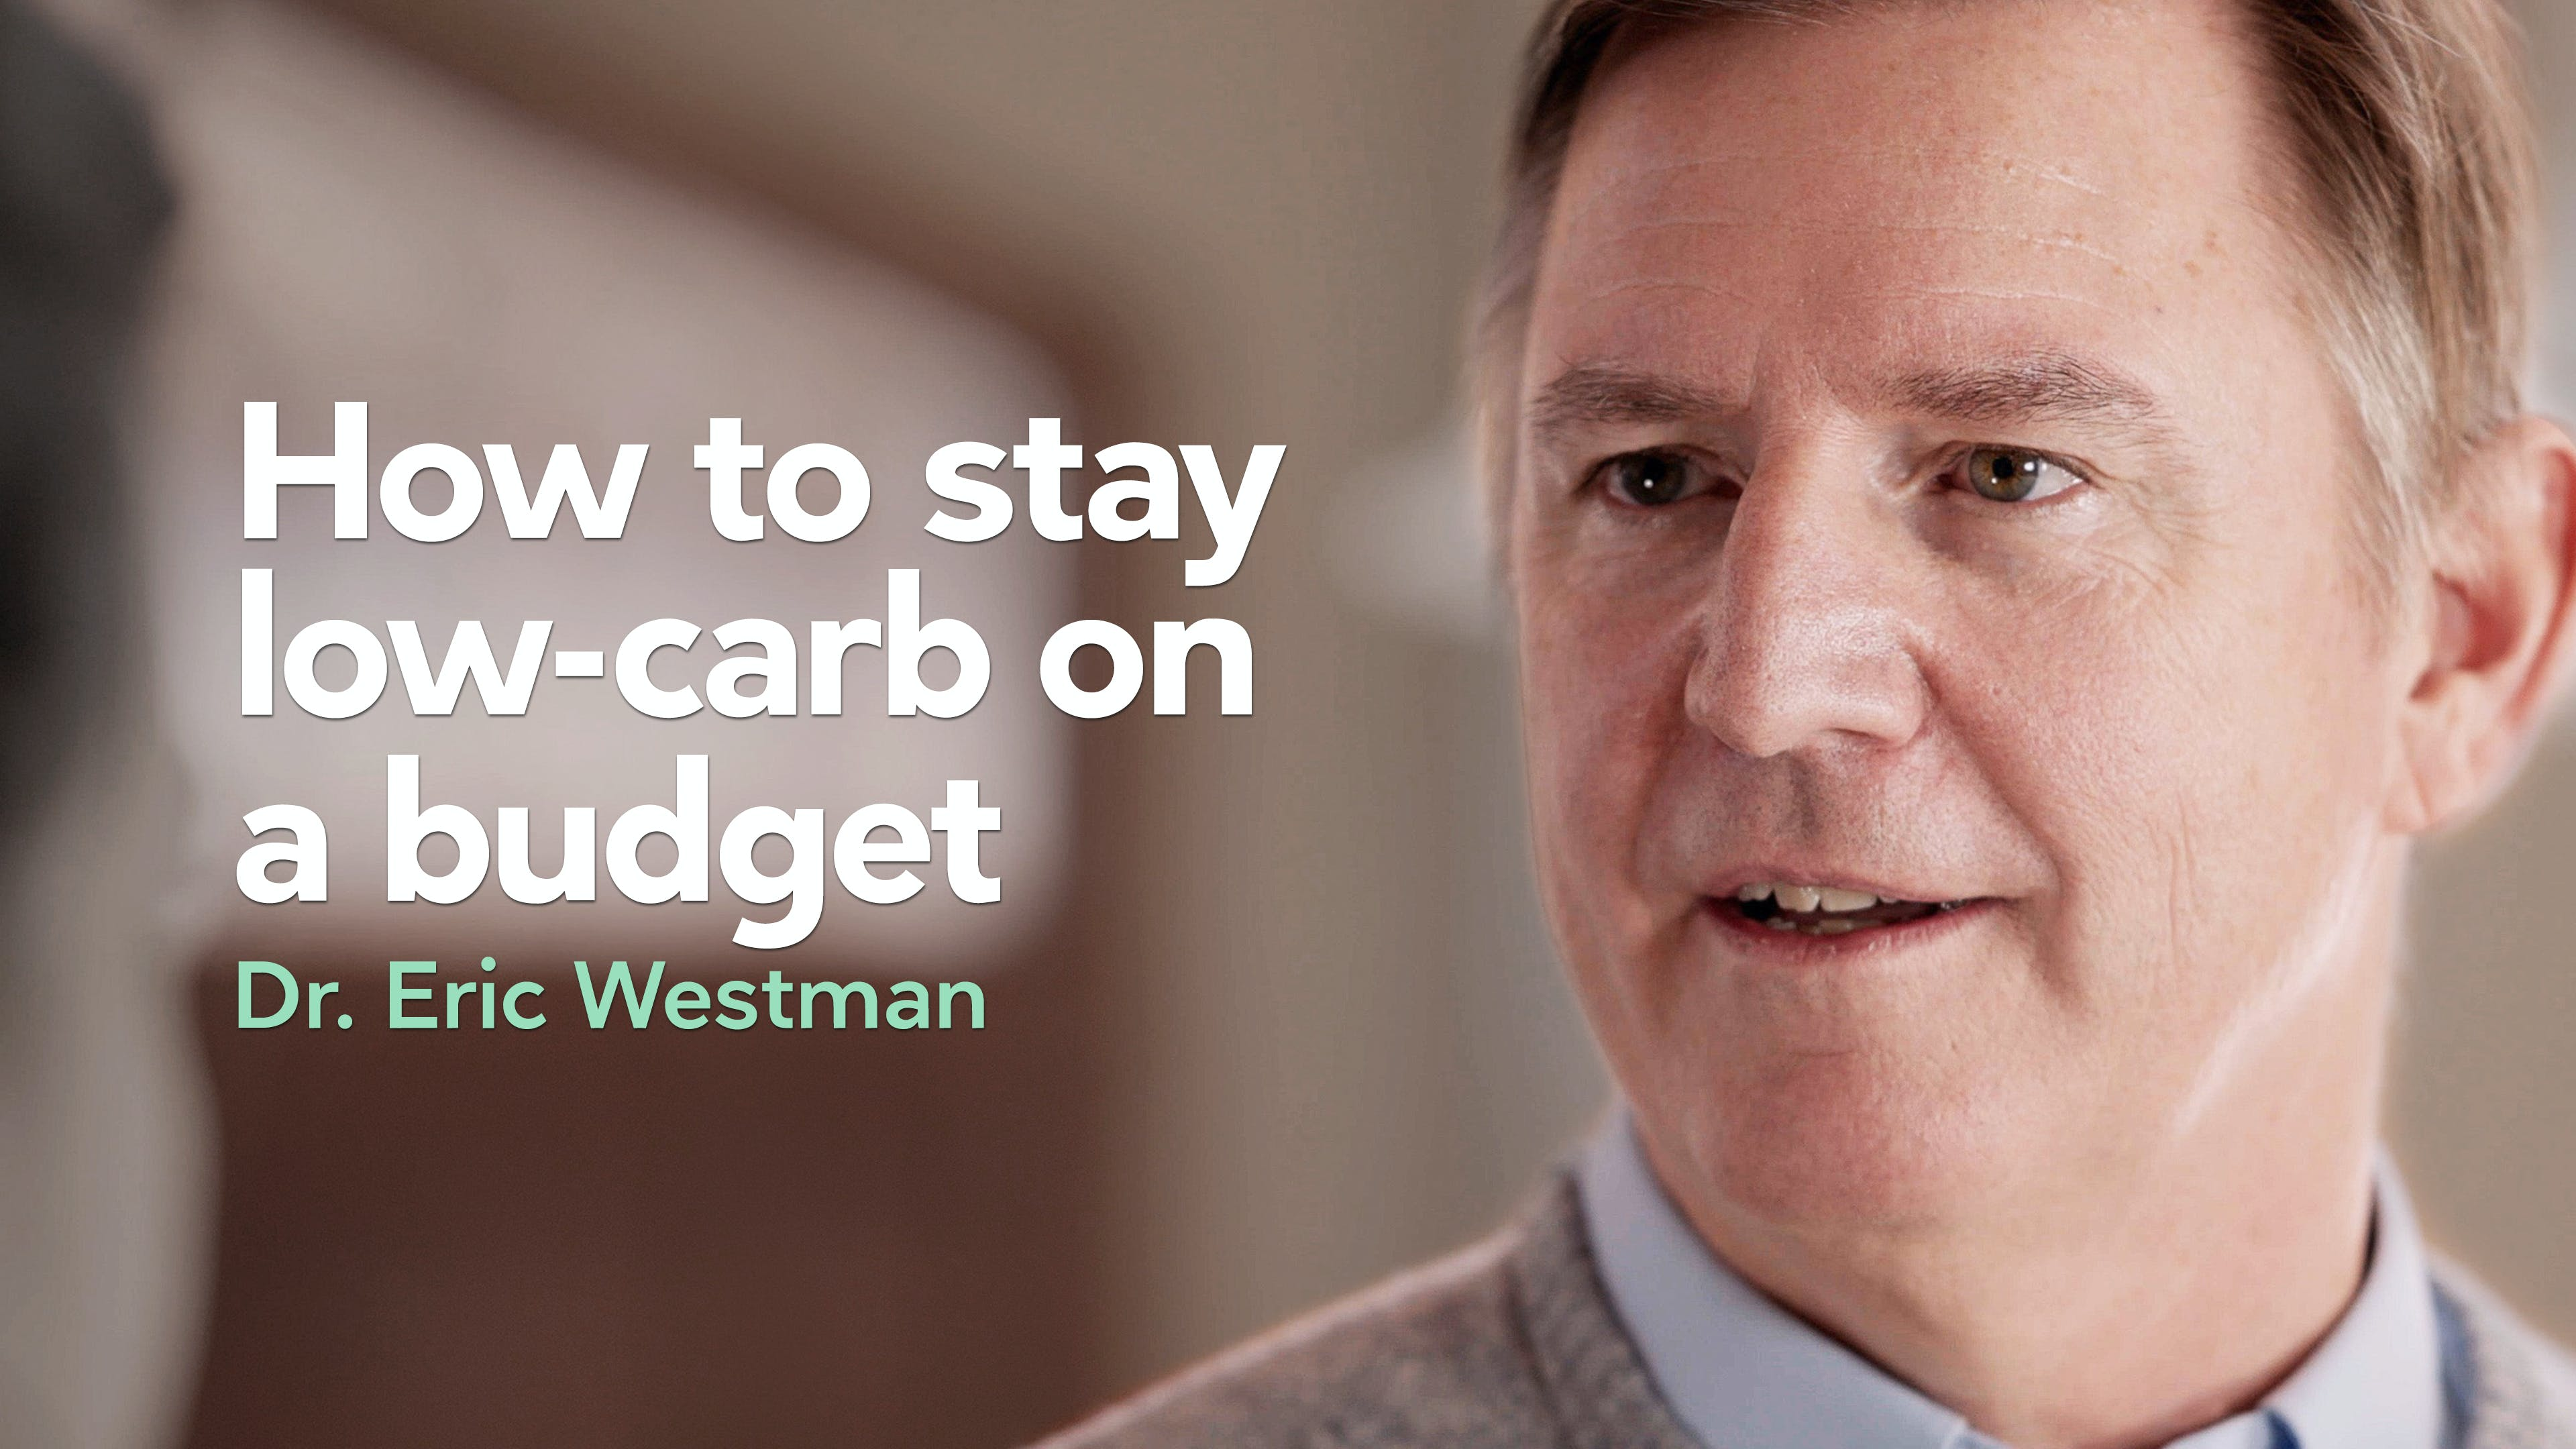 How to stay low carb on a budget – Dr. Eric Westman